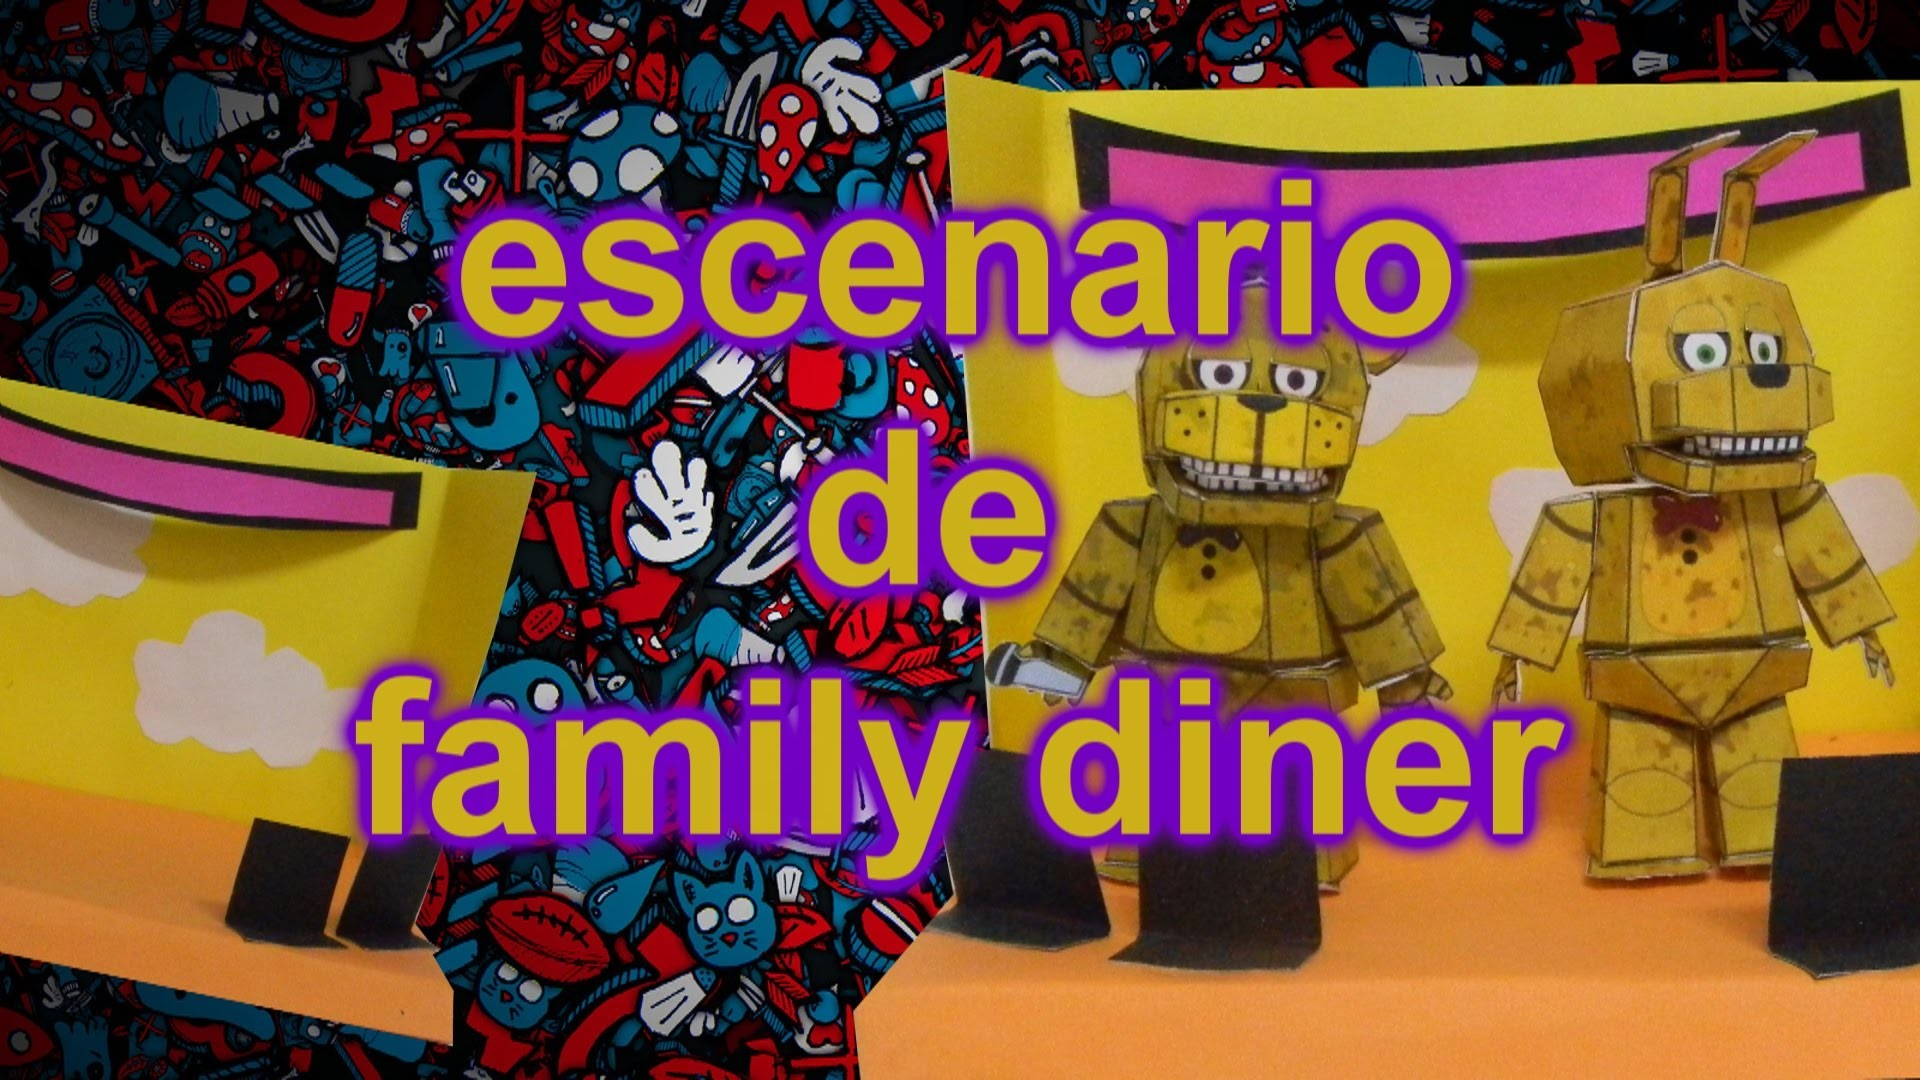 Five Nigths at freddy| FREDBEAR FAMILY DINER.geono paper